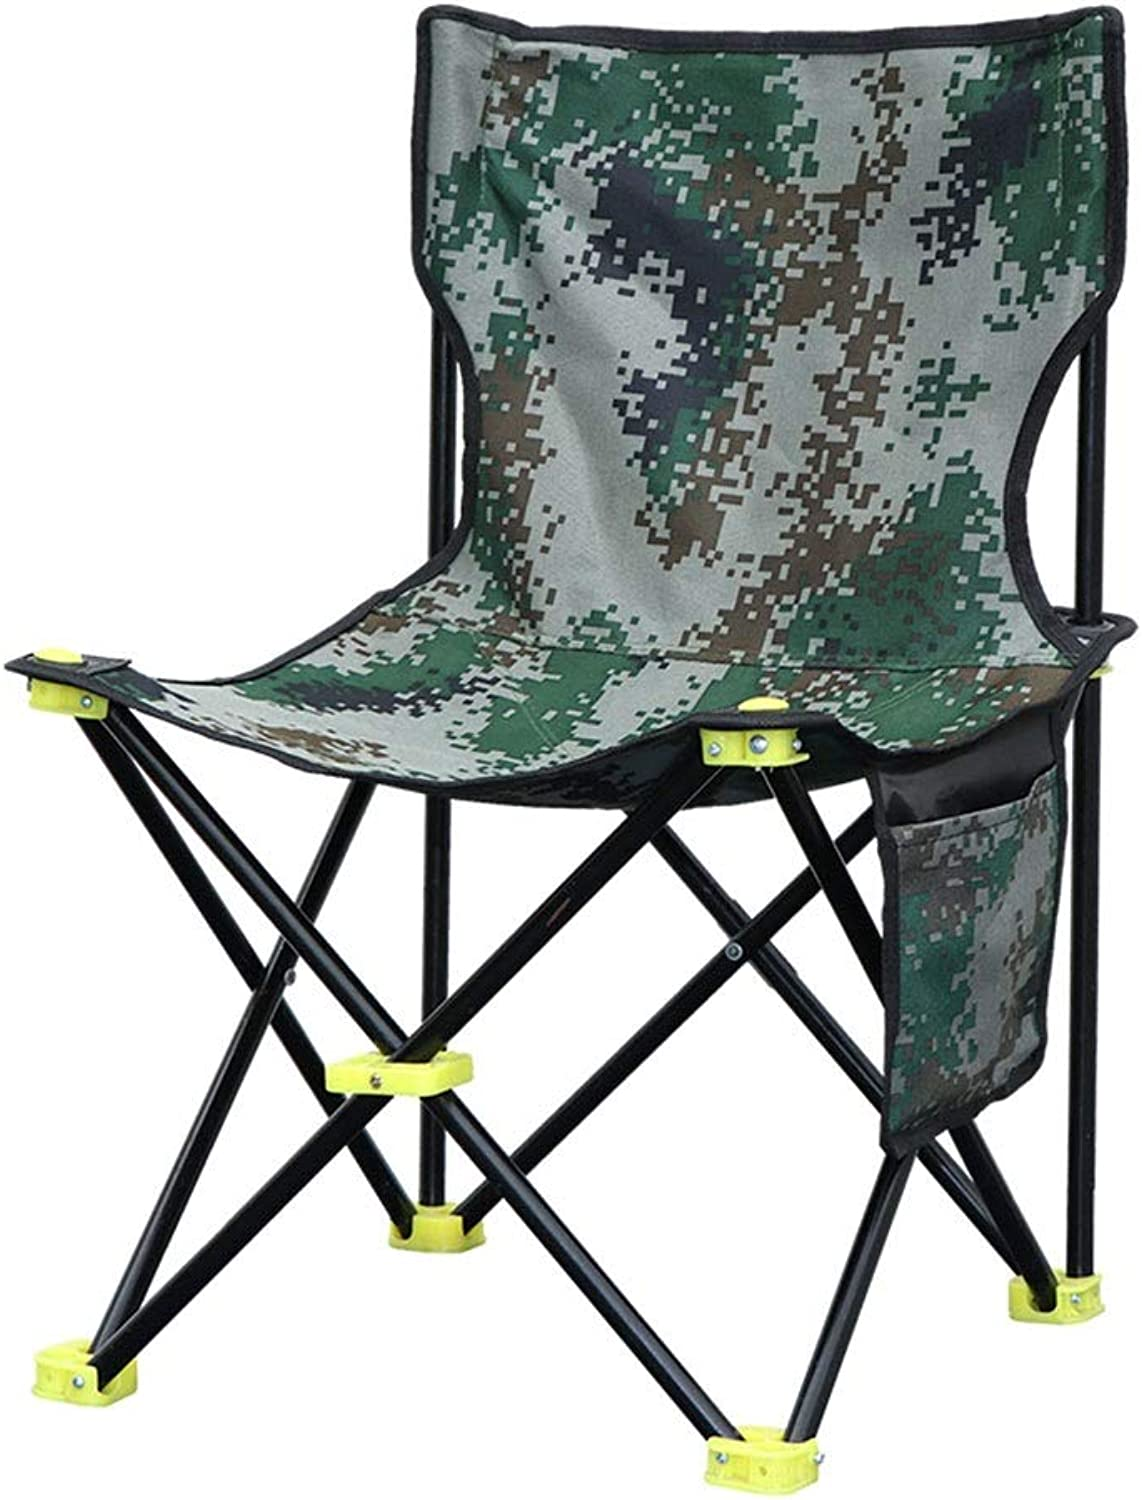 CGH Folding Camping Chair Portable Lightweight Backpack Chairs Compact Heavy Duty with Carry Bag for Hiking Picnic Beach Camp Backpacking Outdoor